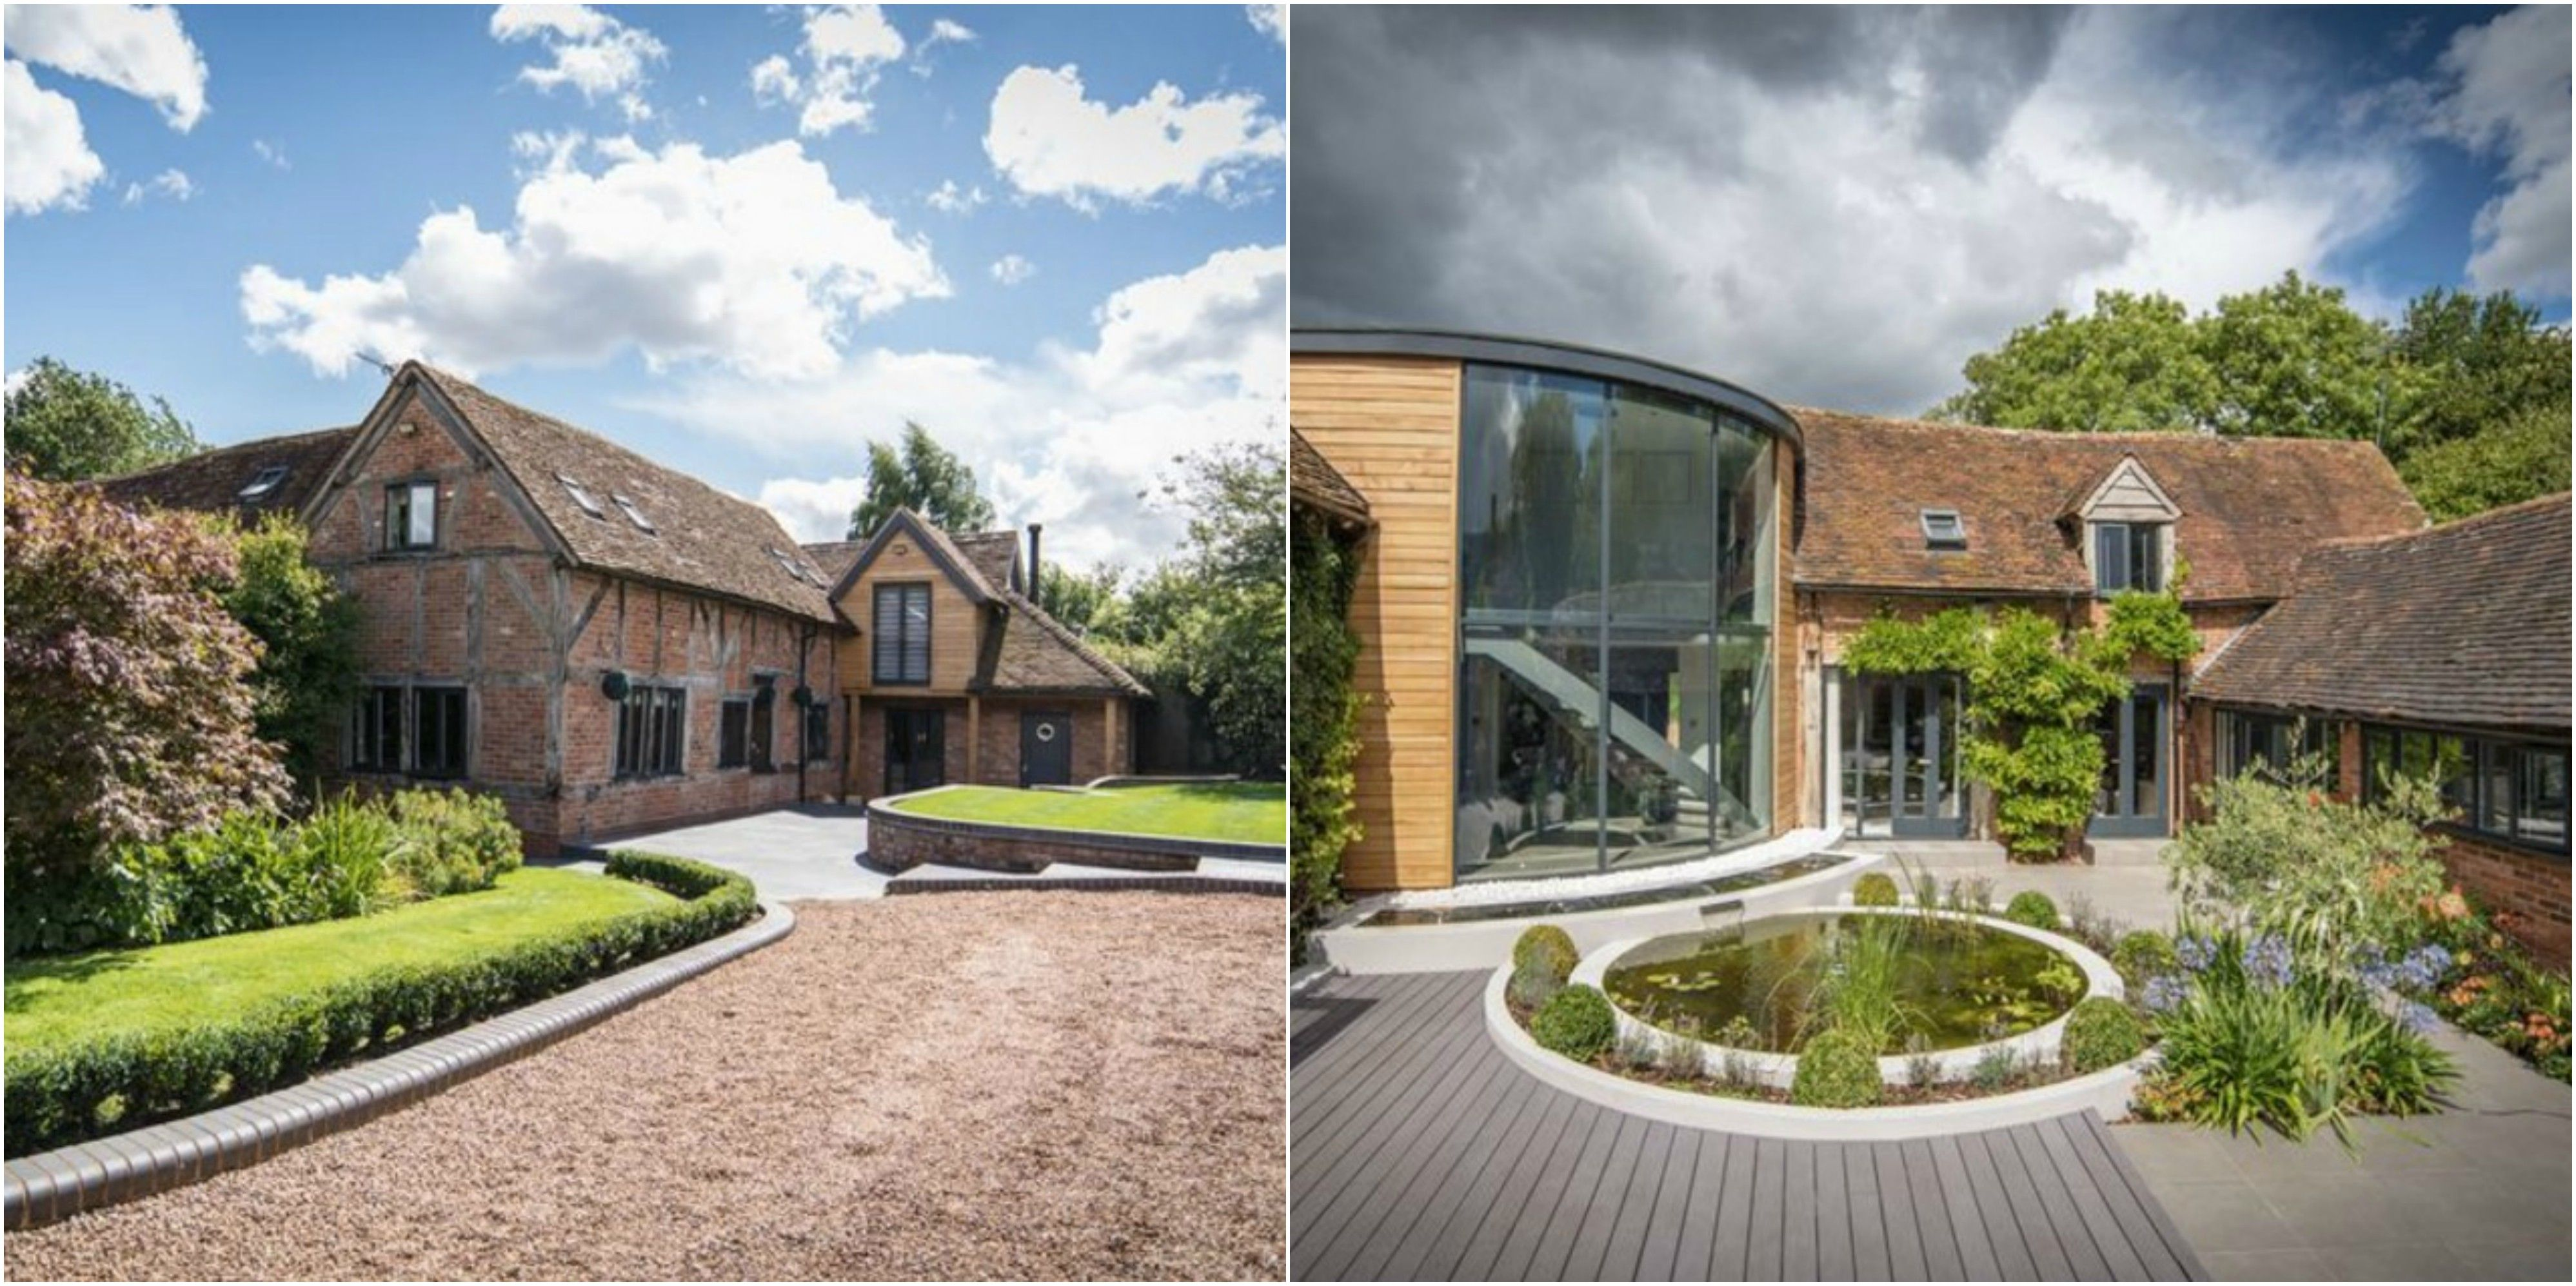 Birmingham Barn Conversion Was The Most-viewed Property On Zoopla In ...